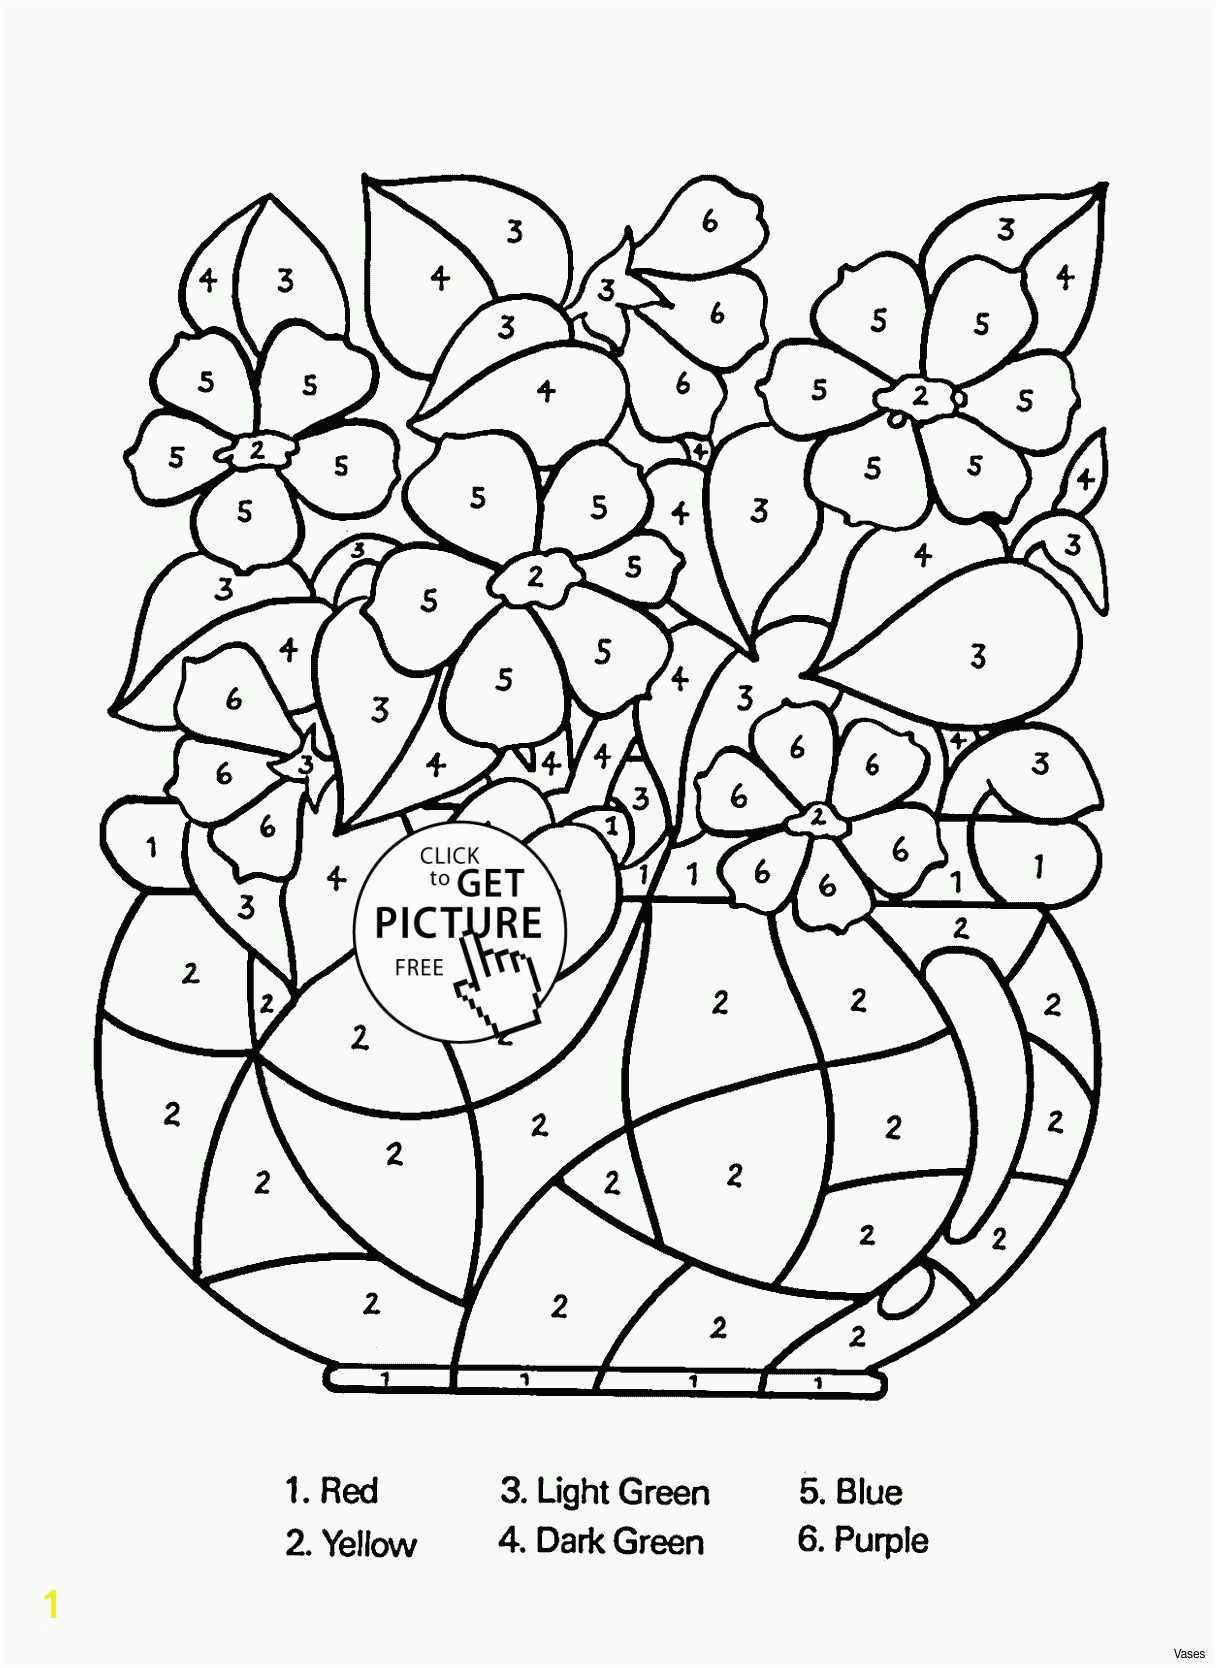 Disney Printable Coloring Pages Pdf Relaxation Coloring Pages Free Adult Coloring Pages Detailed